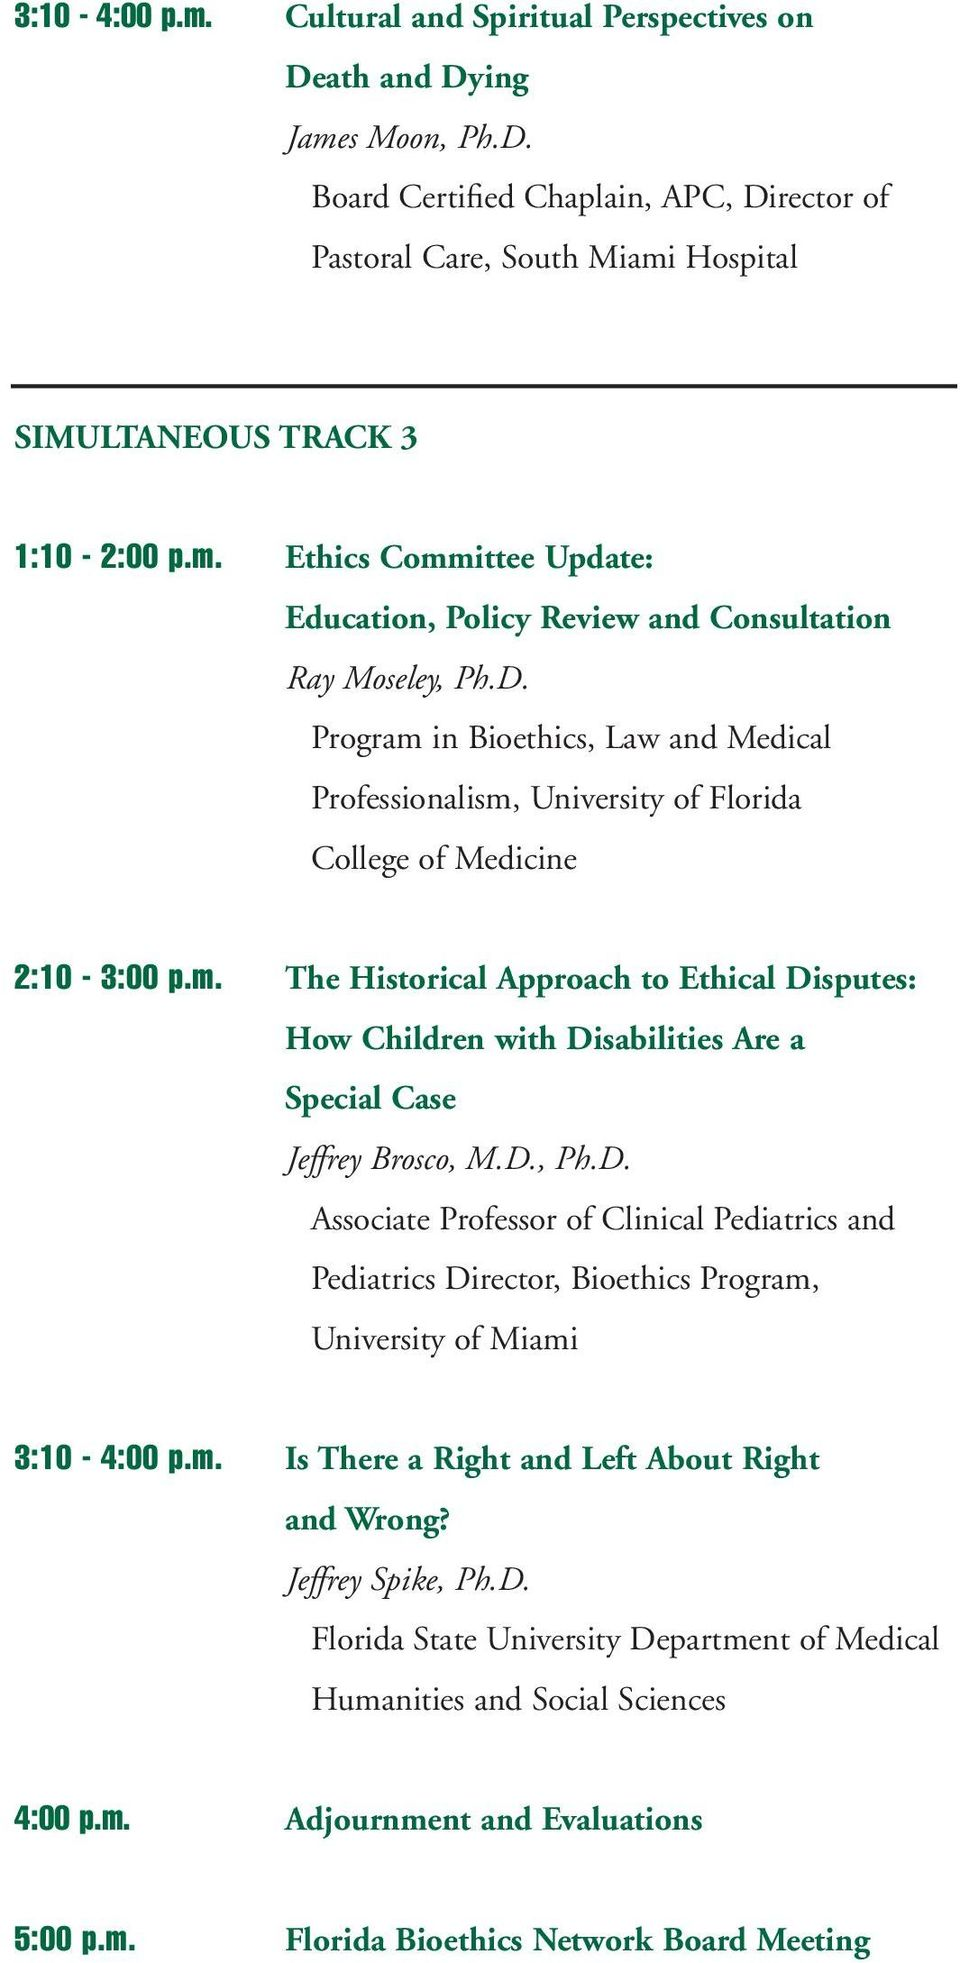 D., Ph.D. Associate Professor of Clinical Pediatrics and Pediatrics Director, Bioethics Program, University of Miami 3:10-4:00 p.m. Is There a Right and Left About Right and Wrong? Jeffrey Spike, Ph.